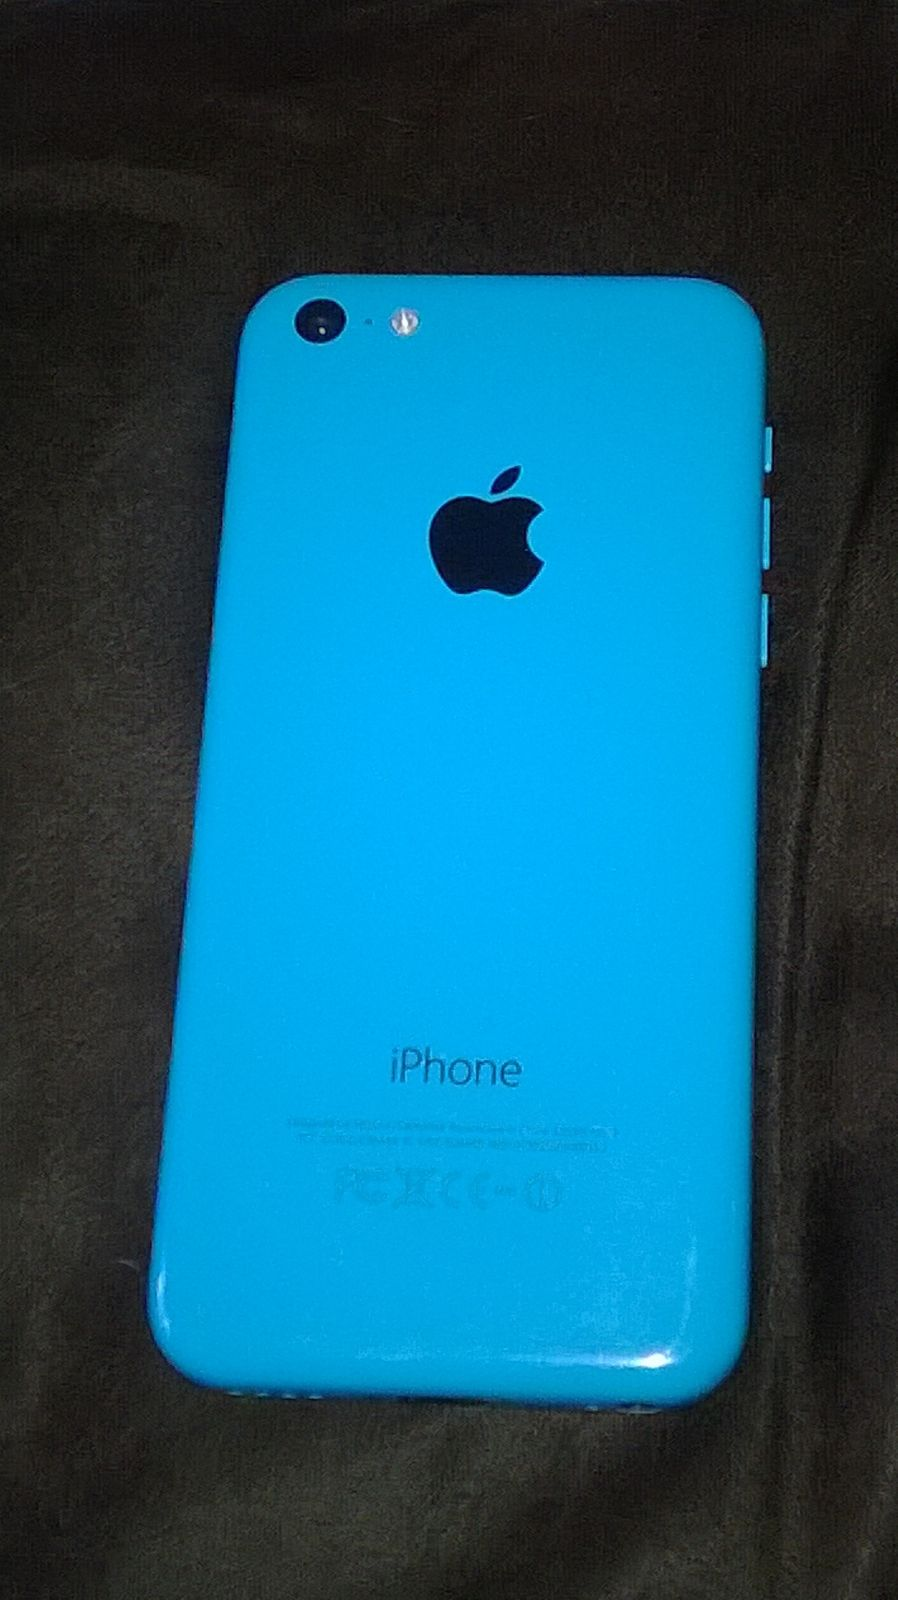 iphone 5c for sale cheap iphone 5c blue like new for us used sold sold phone 3187